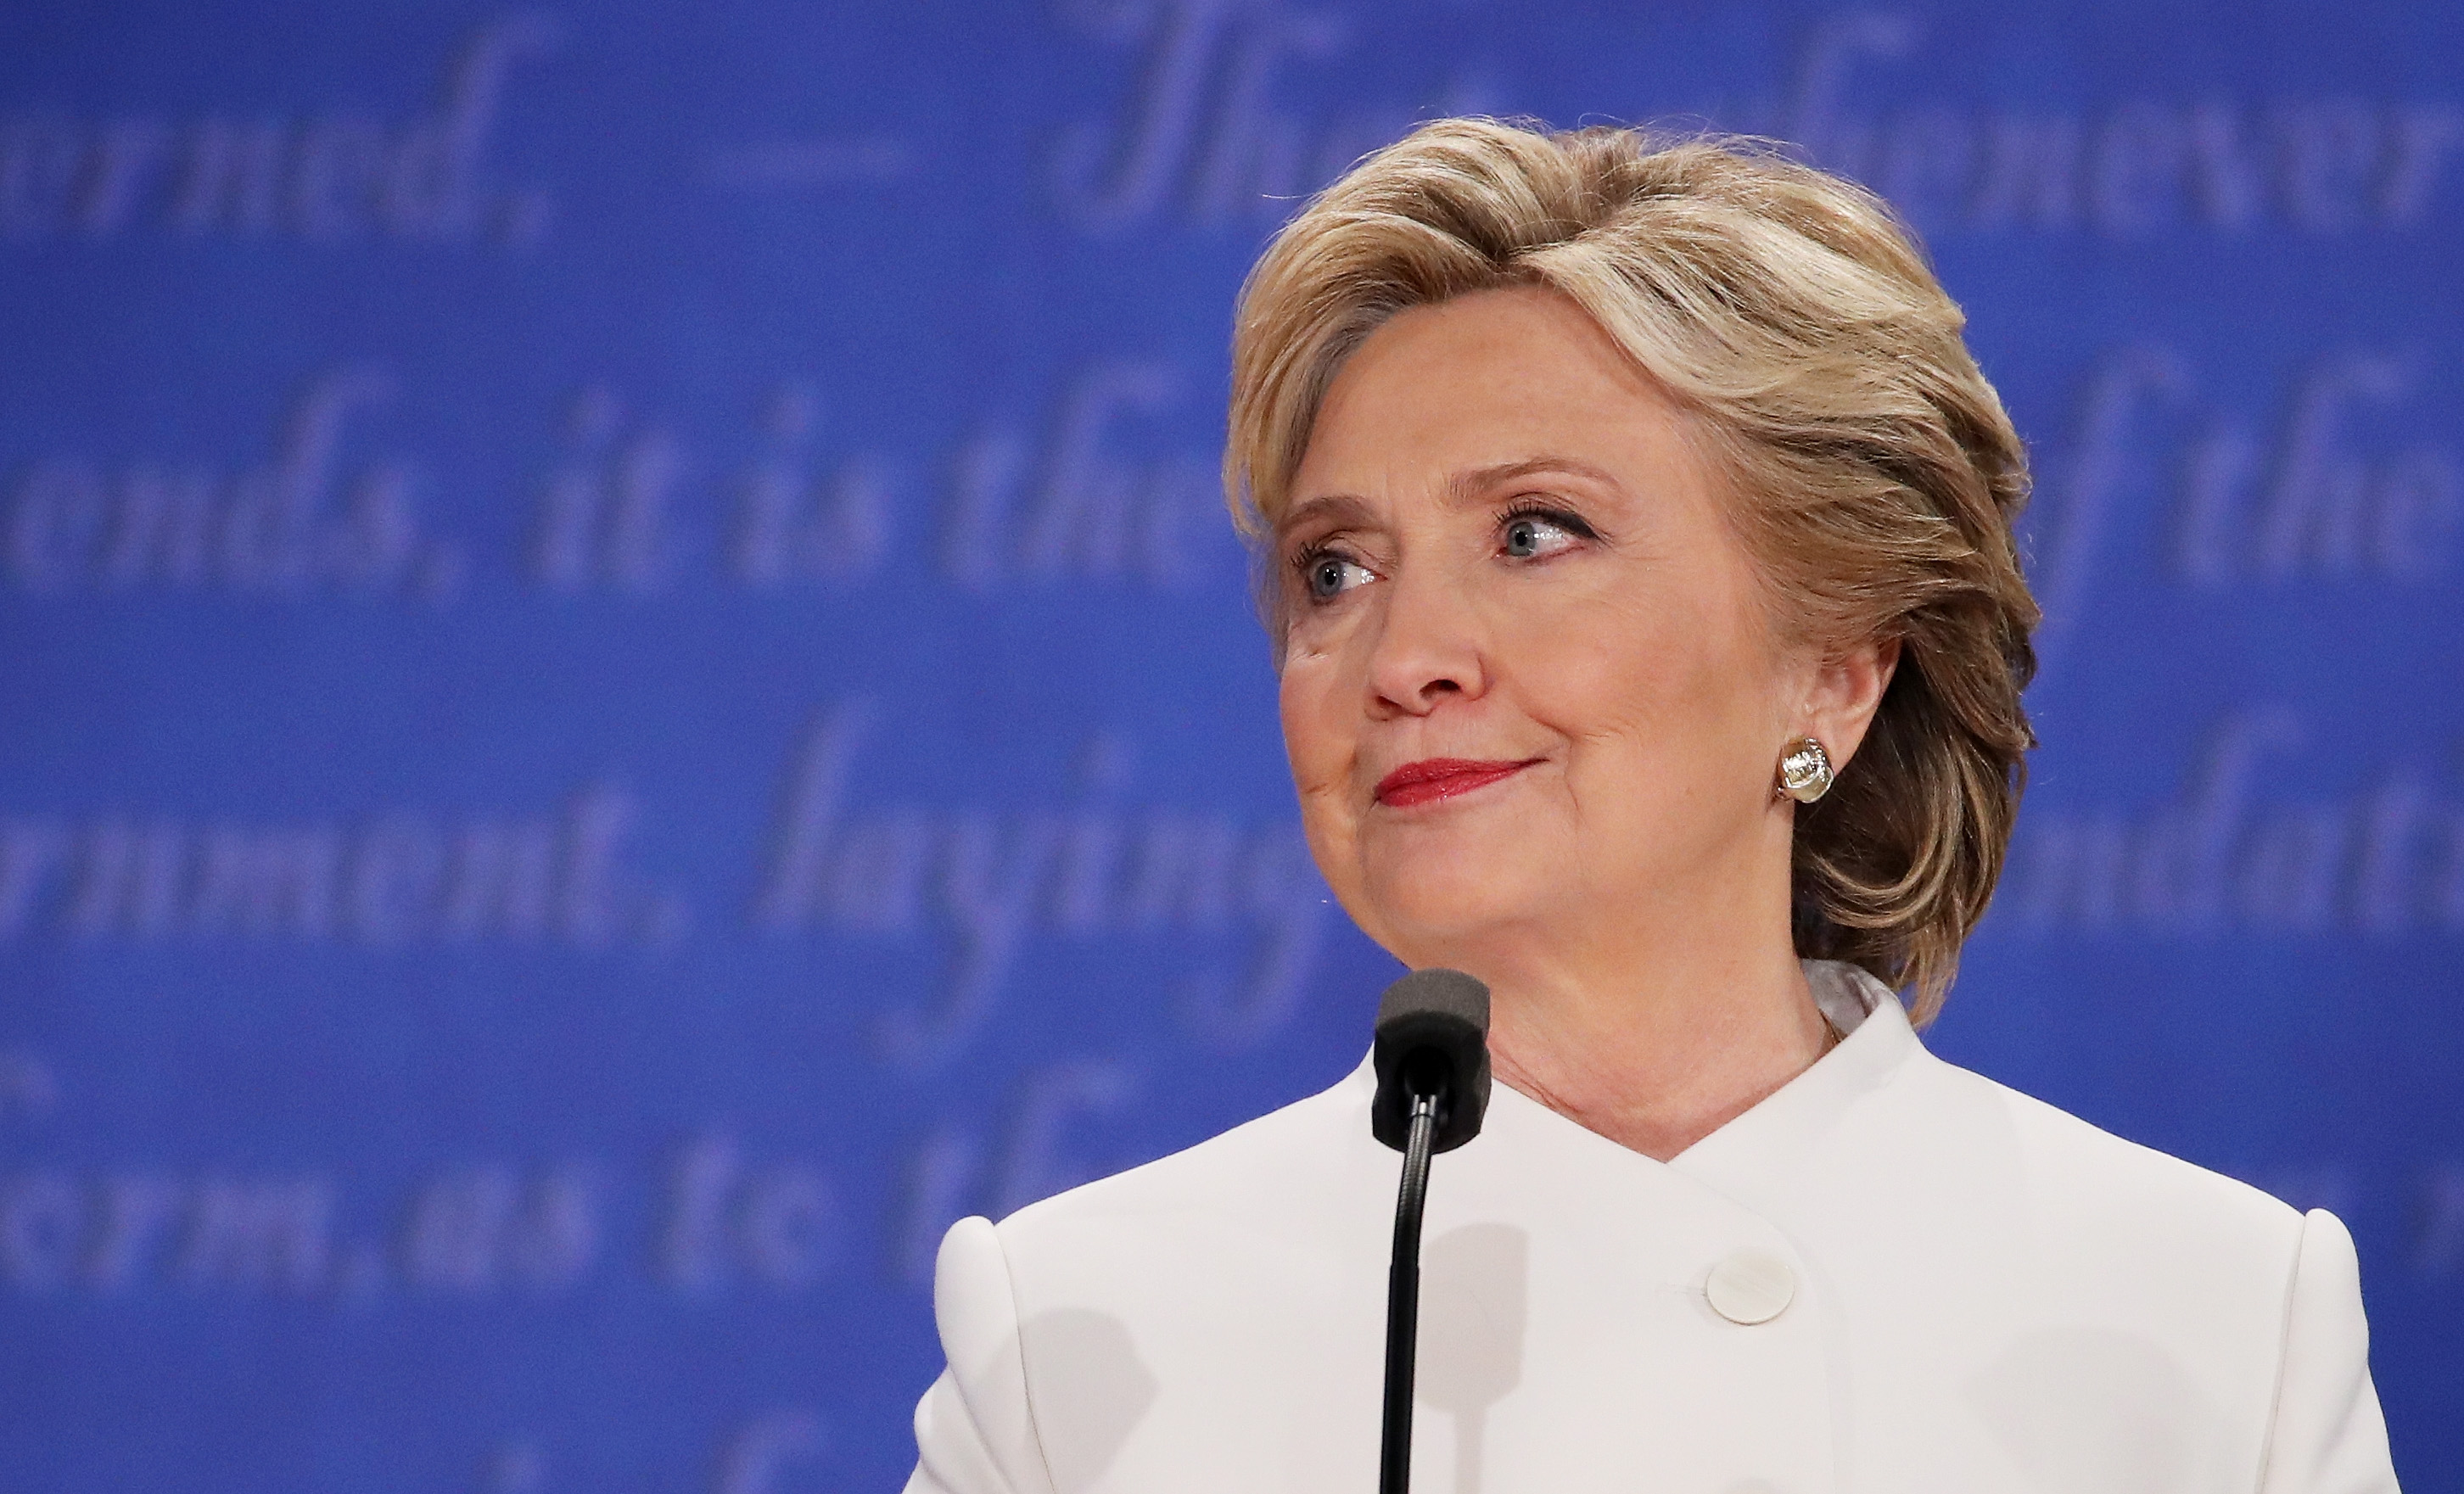 Democratic presidential nominee former Secretary of State Hillary Clinton during the third U.S. presidential debate at the Thomas & Mack Center on Oct. 19, 2016 in Las Vegas, Nevada.